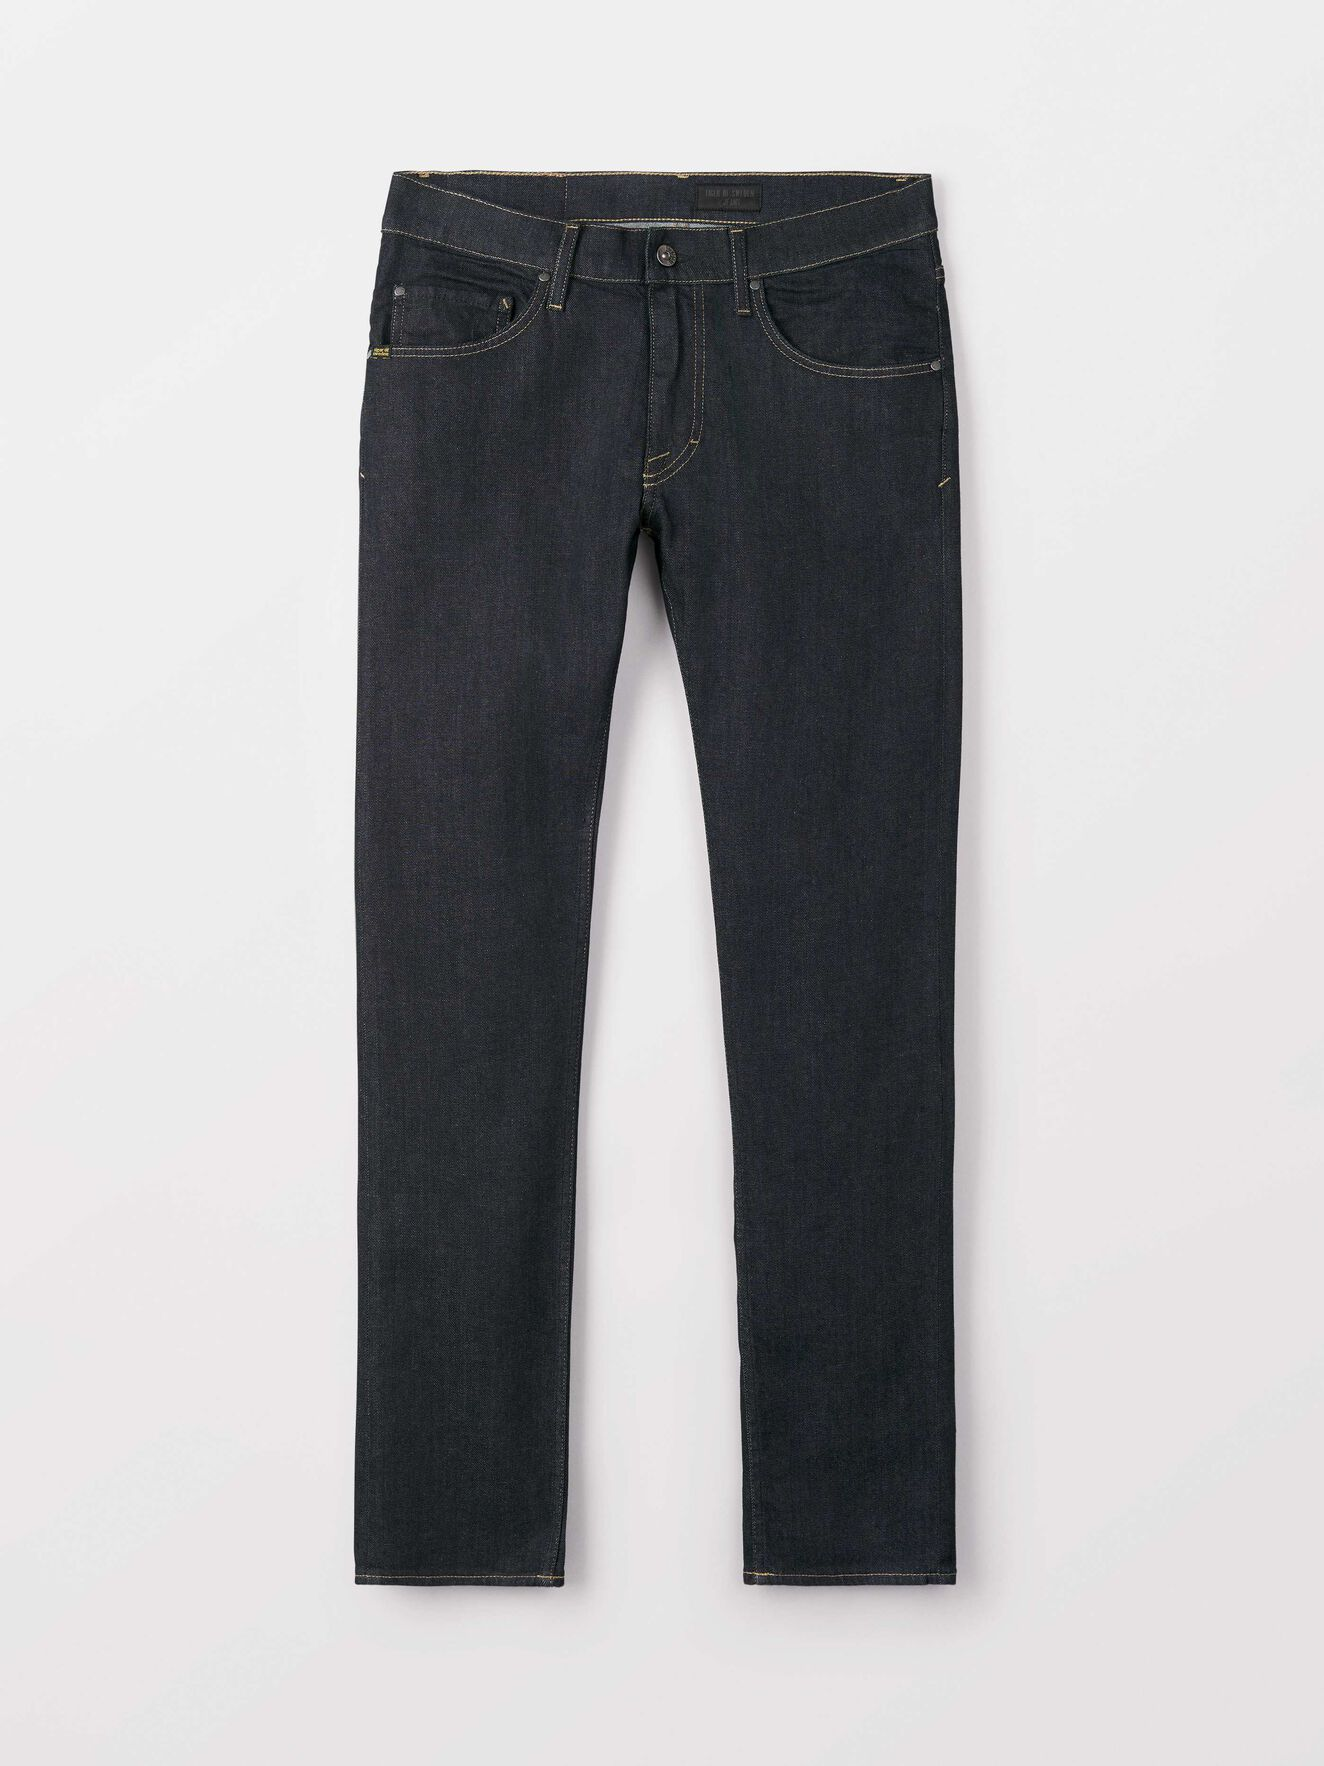 c94eea441d ... Iggy Jeans in Midnight blue from Tiger of Sweden ...